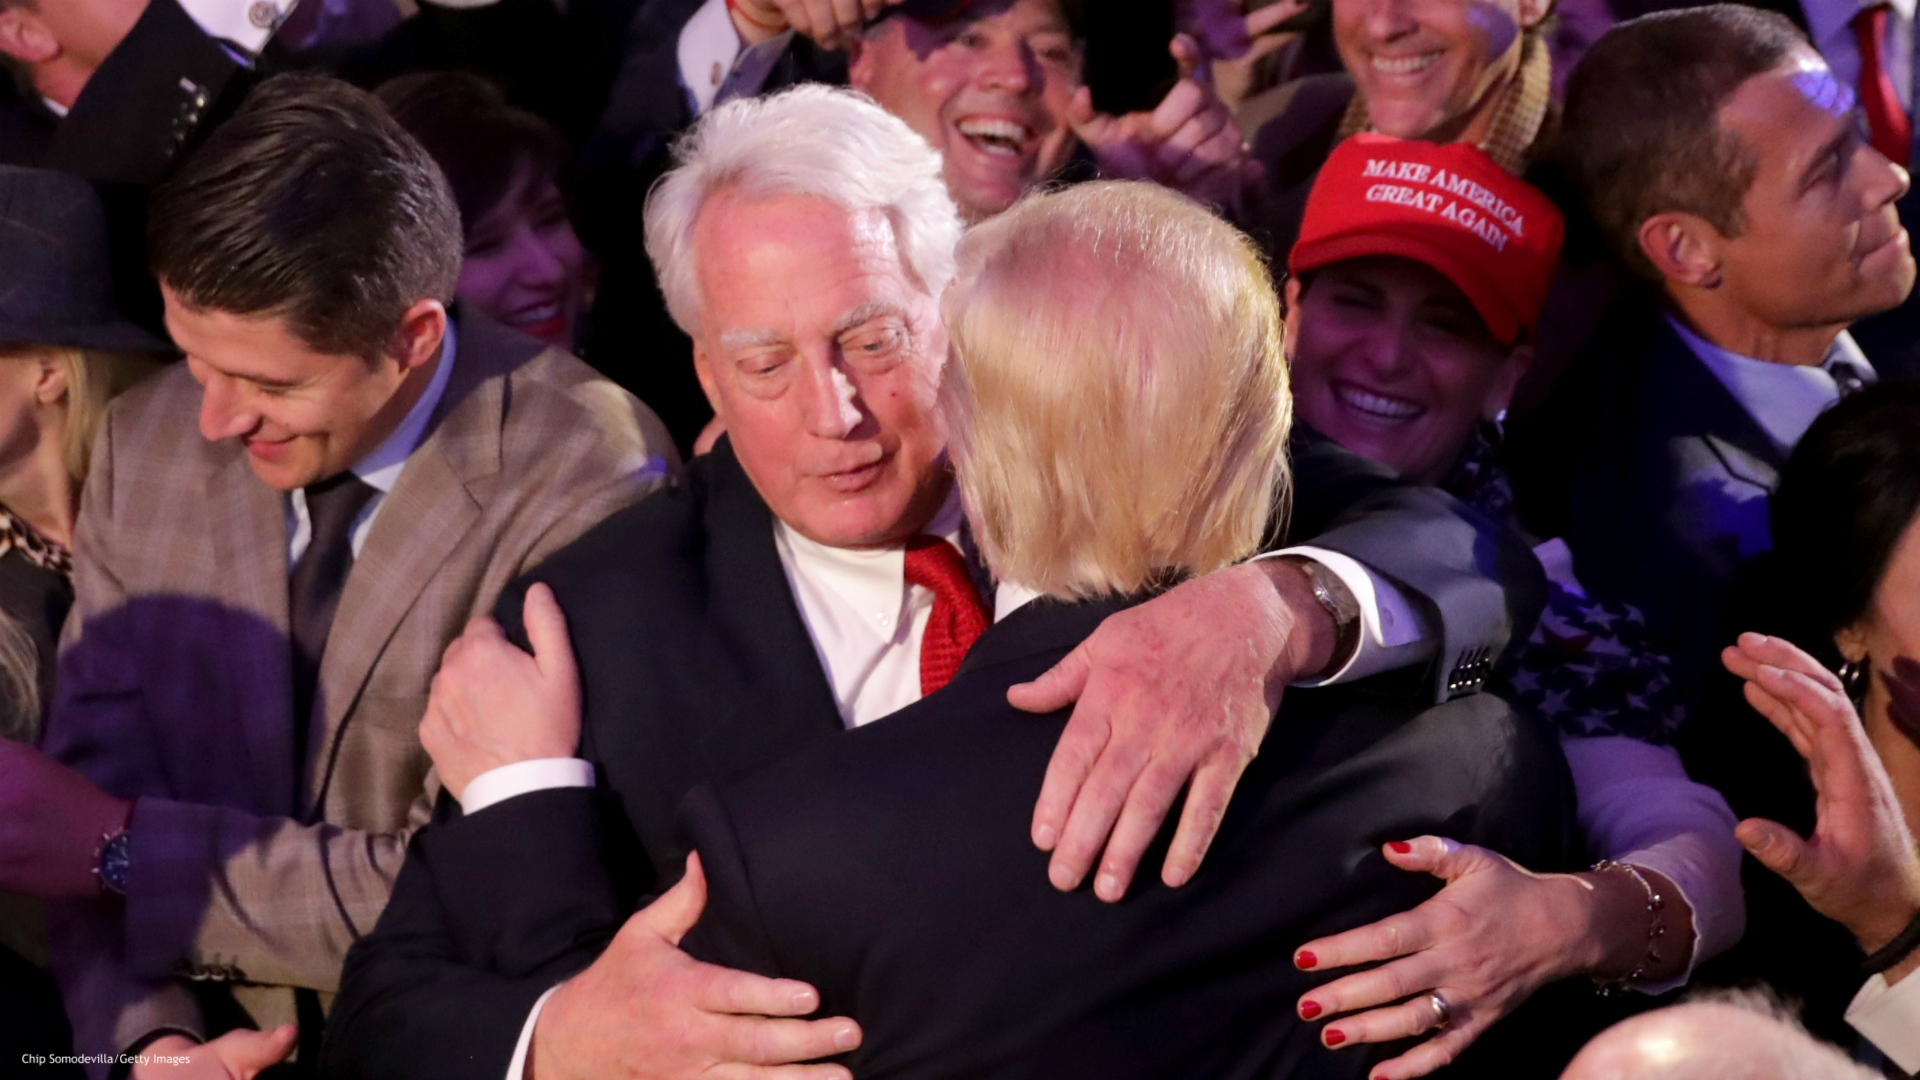 NOVEMBER 09: Republican president-elect Donald Trump (R) hugs his brother Robert Trump after delivering his acceptance speech at the New York Hilton Midtown in the early morning hours of November 9, 2016 in New York City. Donald Trump defeated Democratic presidential nominee Hillary Clinton to become the 45th president of the United States. (Photo by Chip Somodevilla/Getty Images)